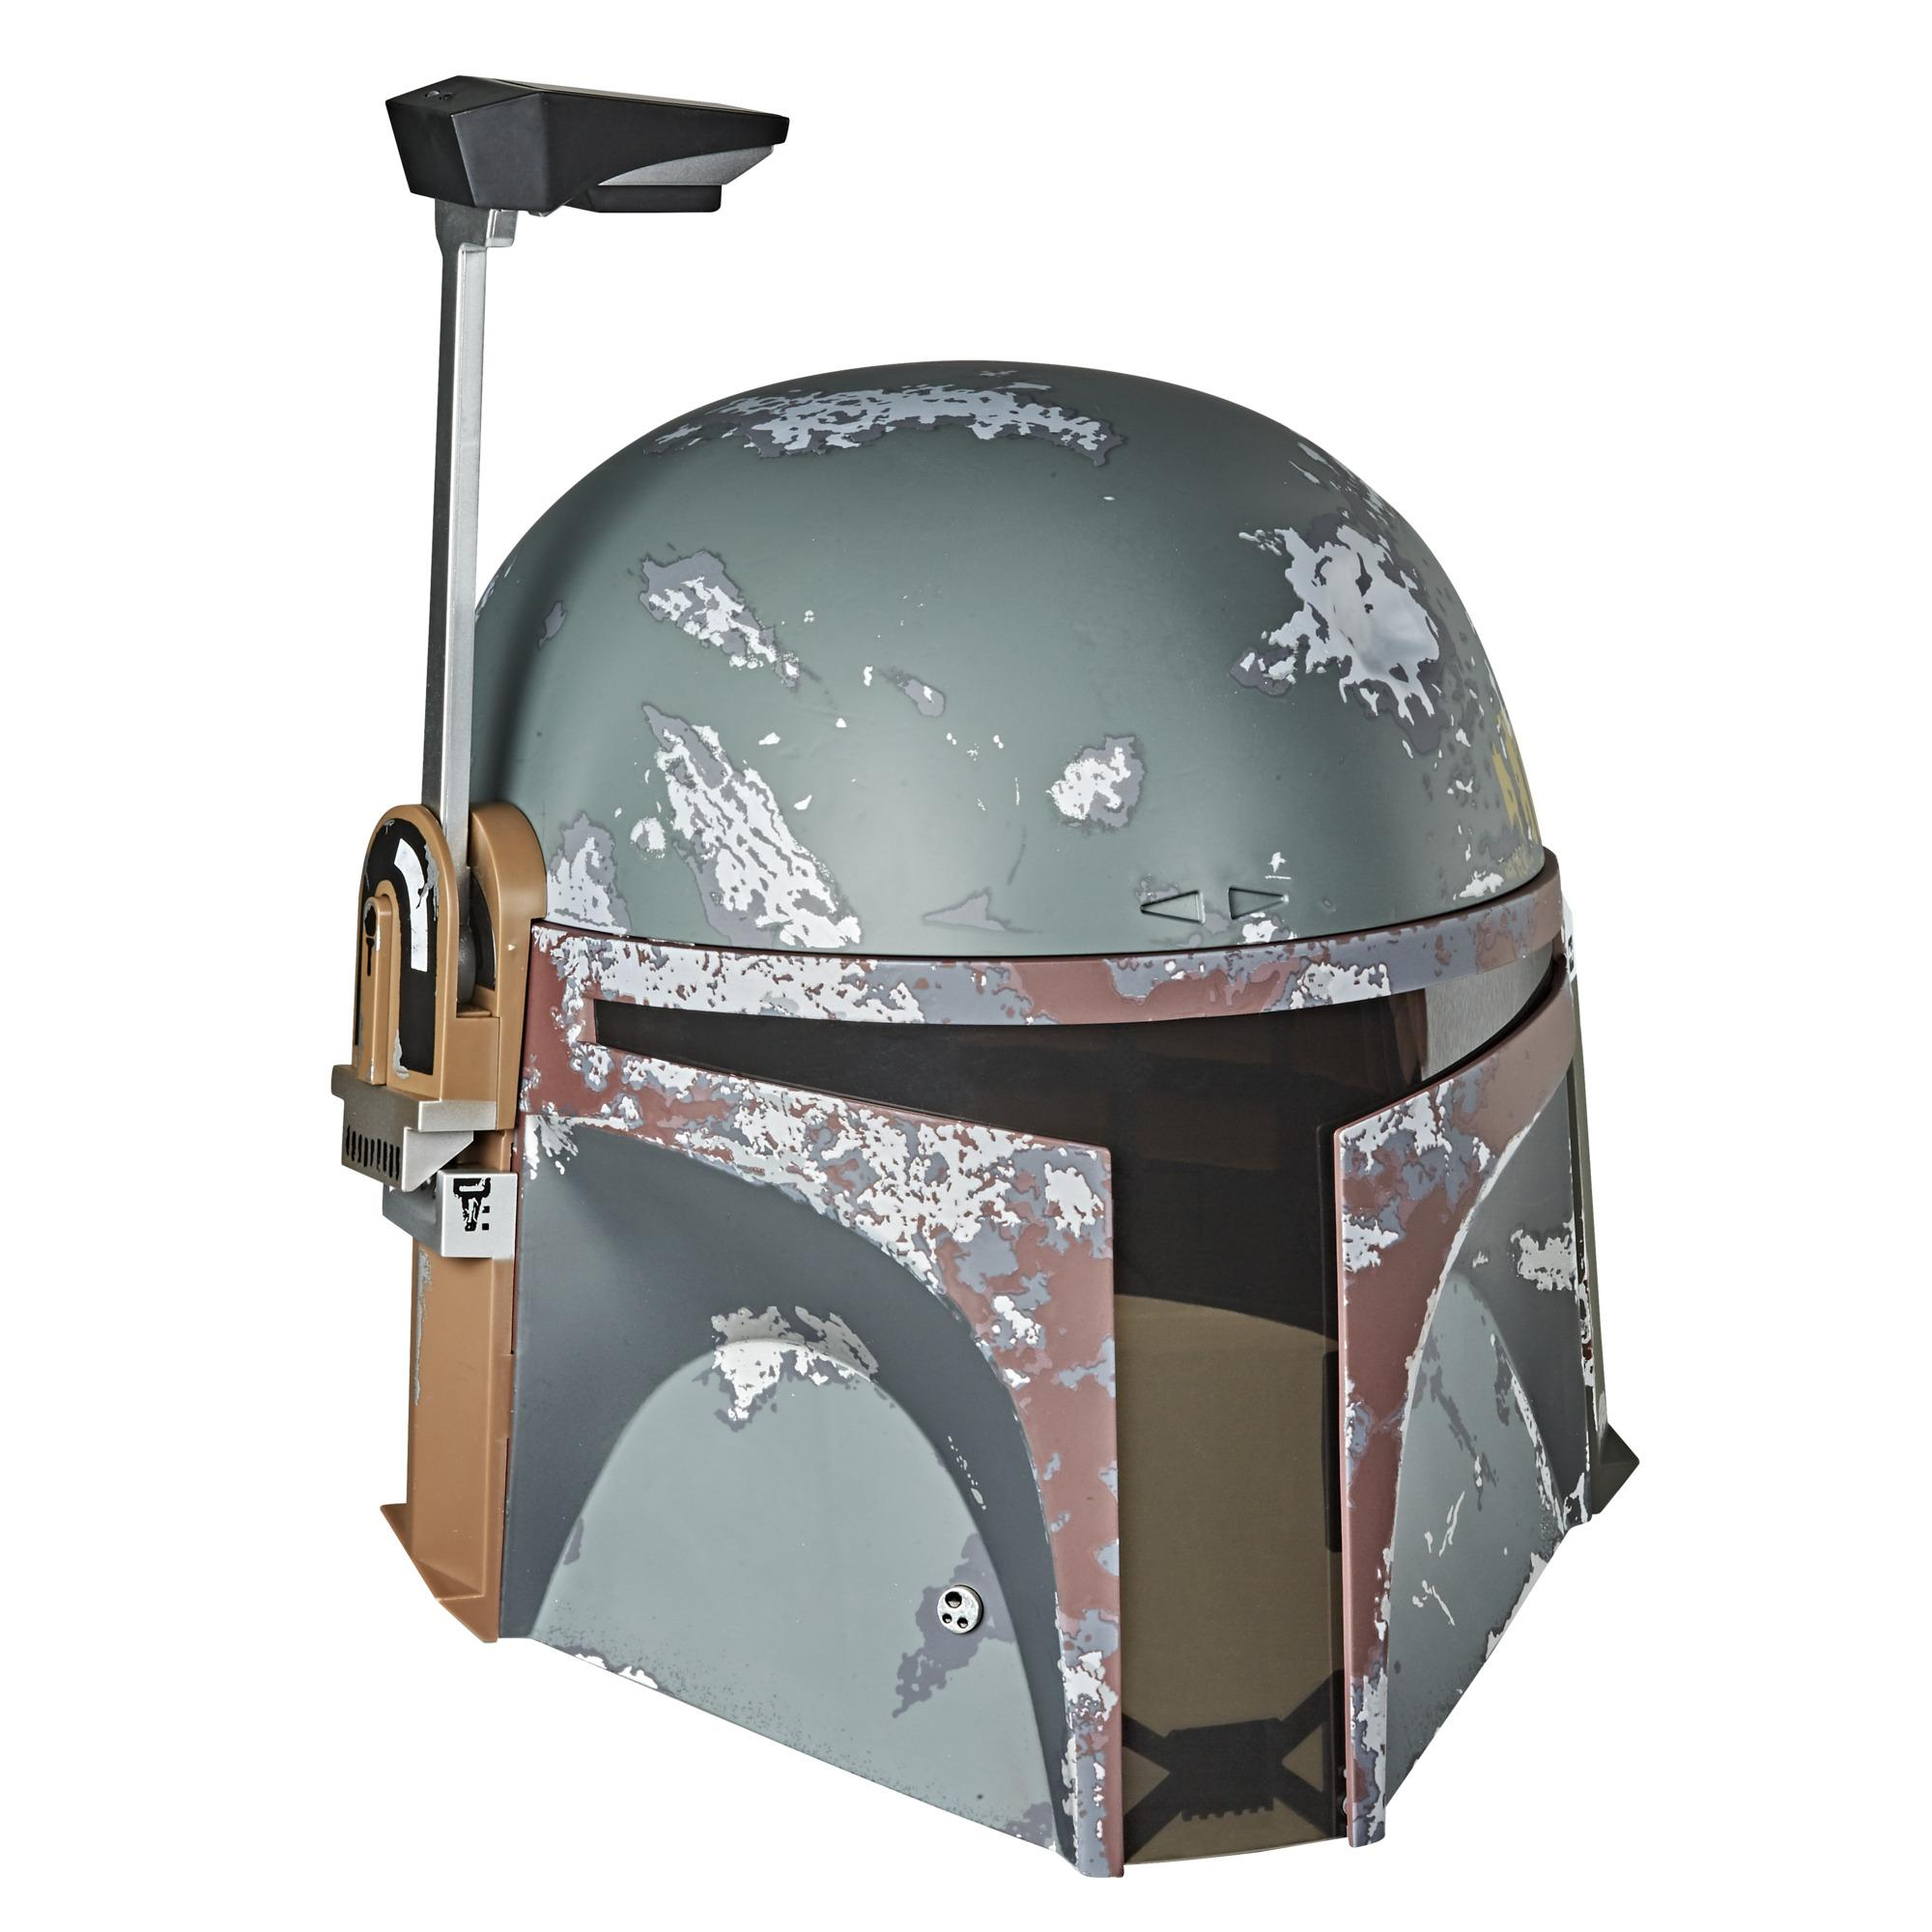 Casco electrónico premium de Boba Fett de Star Wars The Black Series, casco para roleplay de Star Wars: El Imperio contraataca